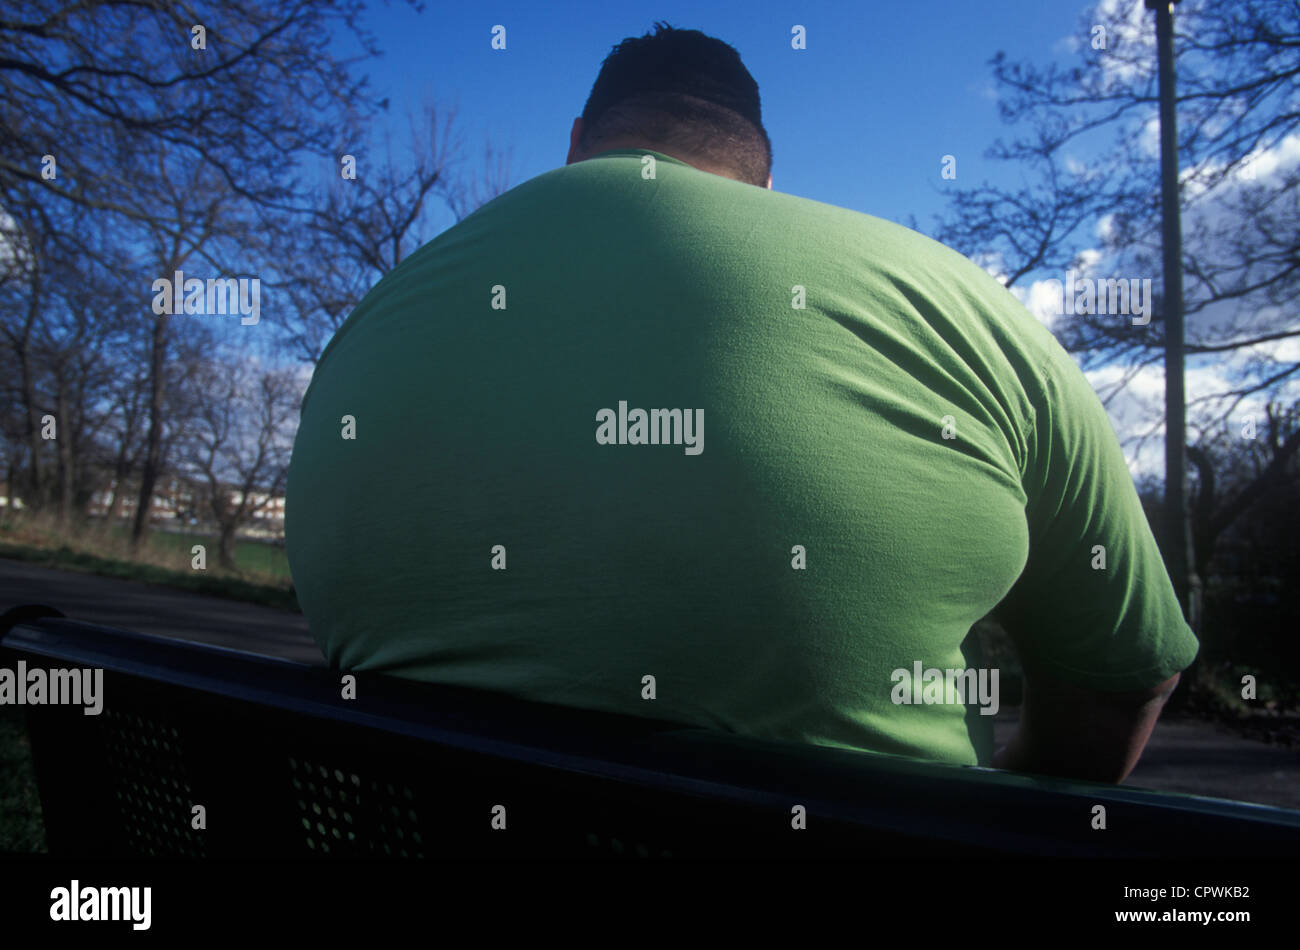 colossus of obese man from the rear - Stock Image